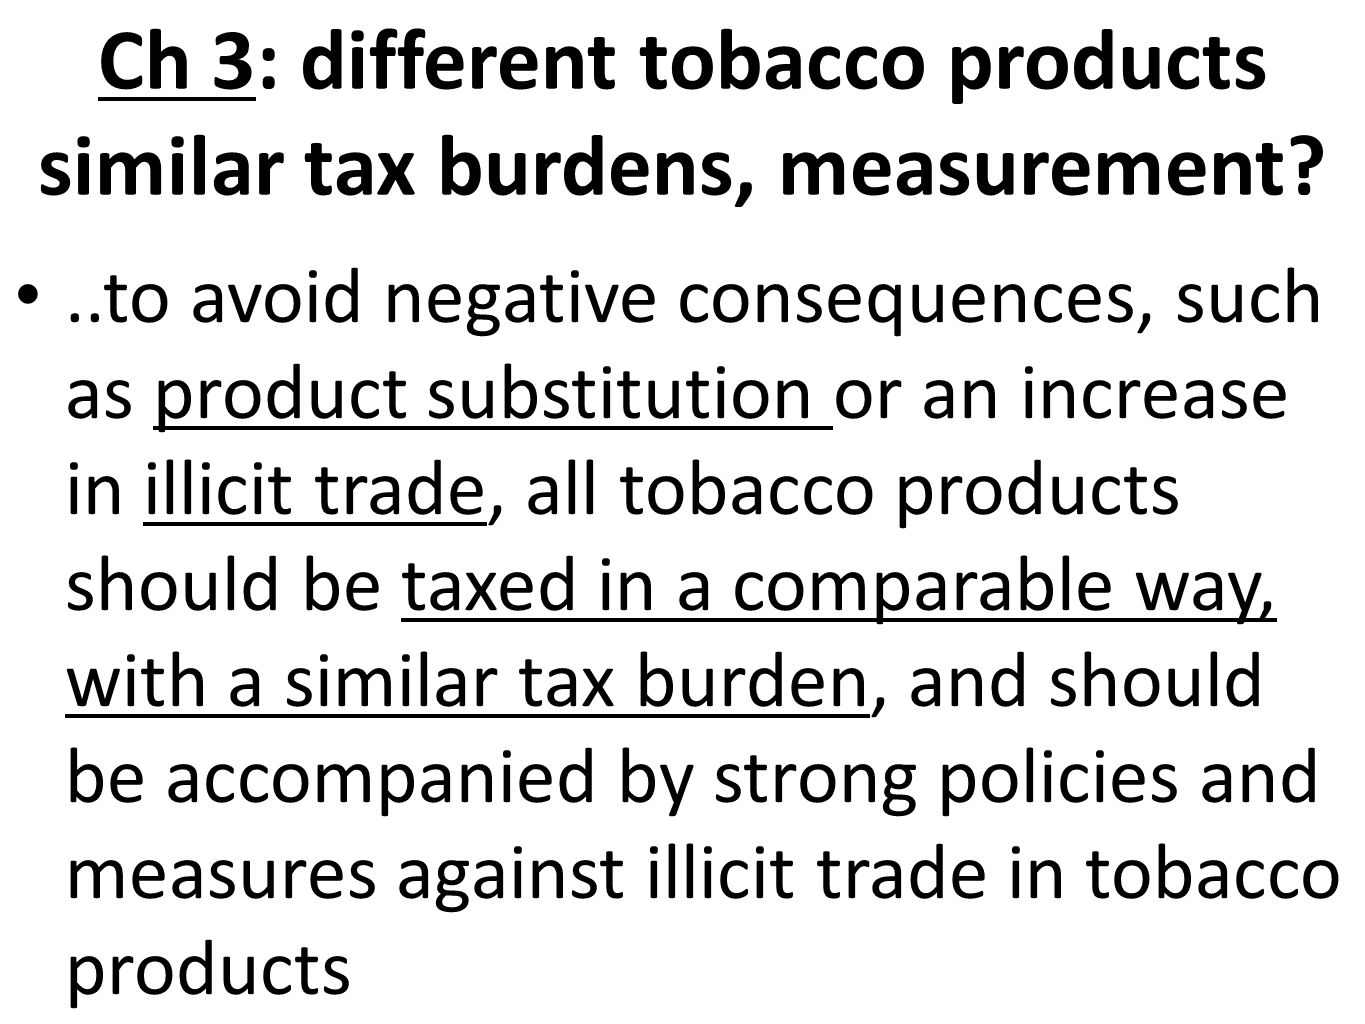 Ch 3: different tobacco products similar tax burdens, measurement?..to avoid negative consequences, such as product substitution or an increase in illicit trade, all tobacco products should be taxed in a comparable way, with a similar tax burden, and should be accompanied by strong policies and measures against illicit trade in tobacco products